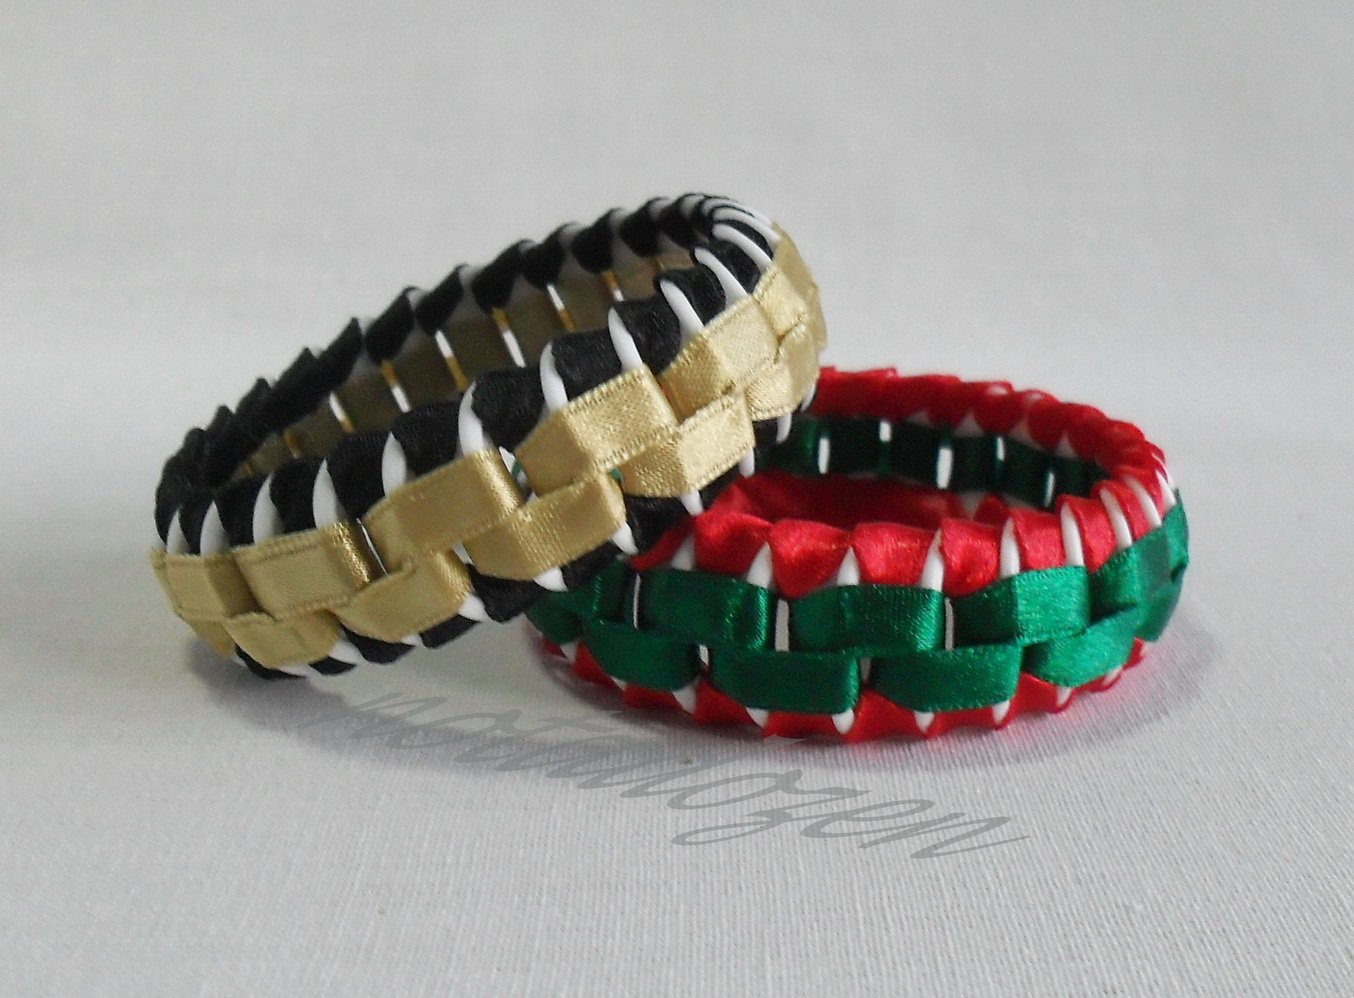 Recycled Bottle Caps Bracelet/bangle(6)-black and gold/red and green ribbon wrappedhandmade jewelry